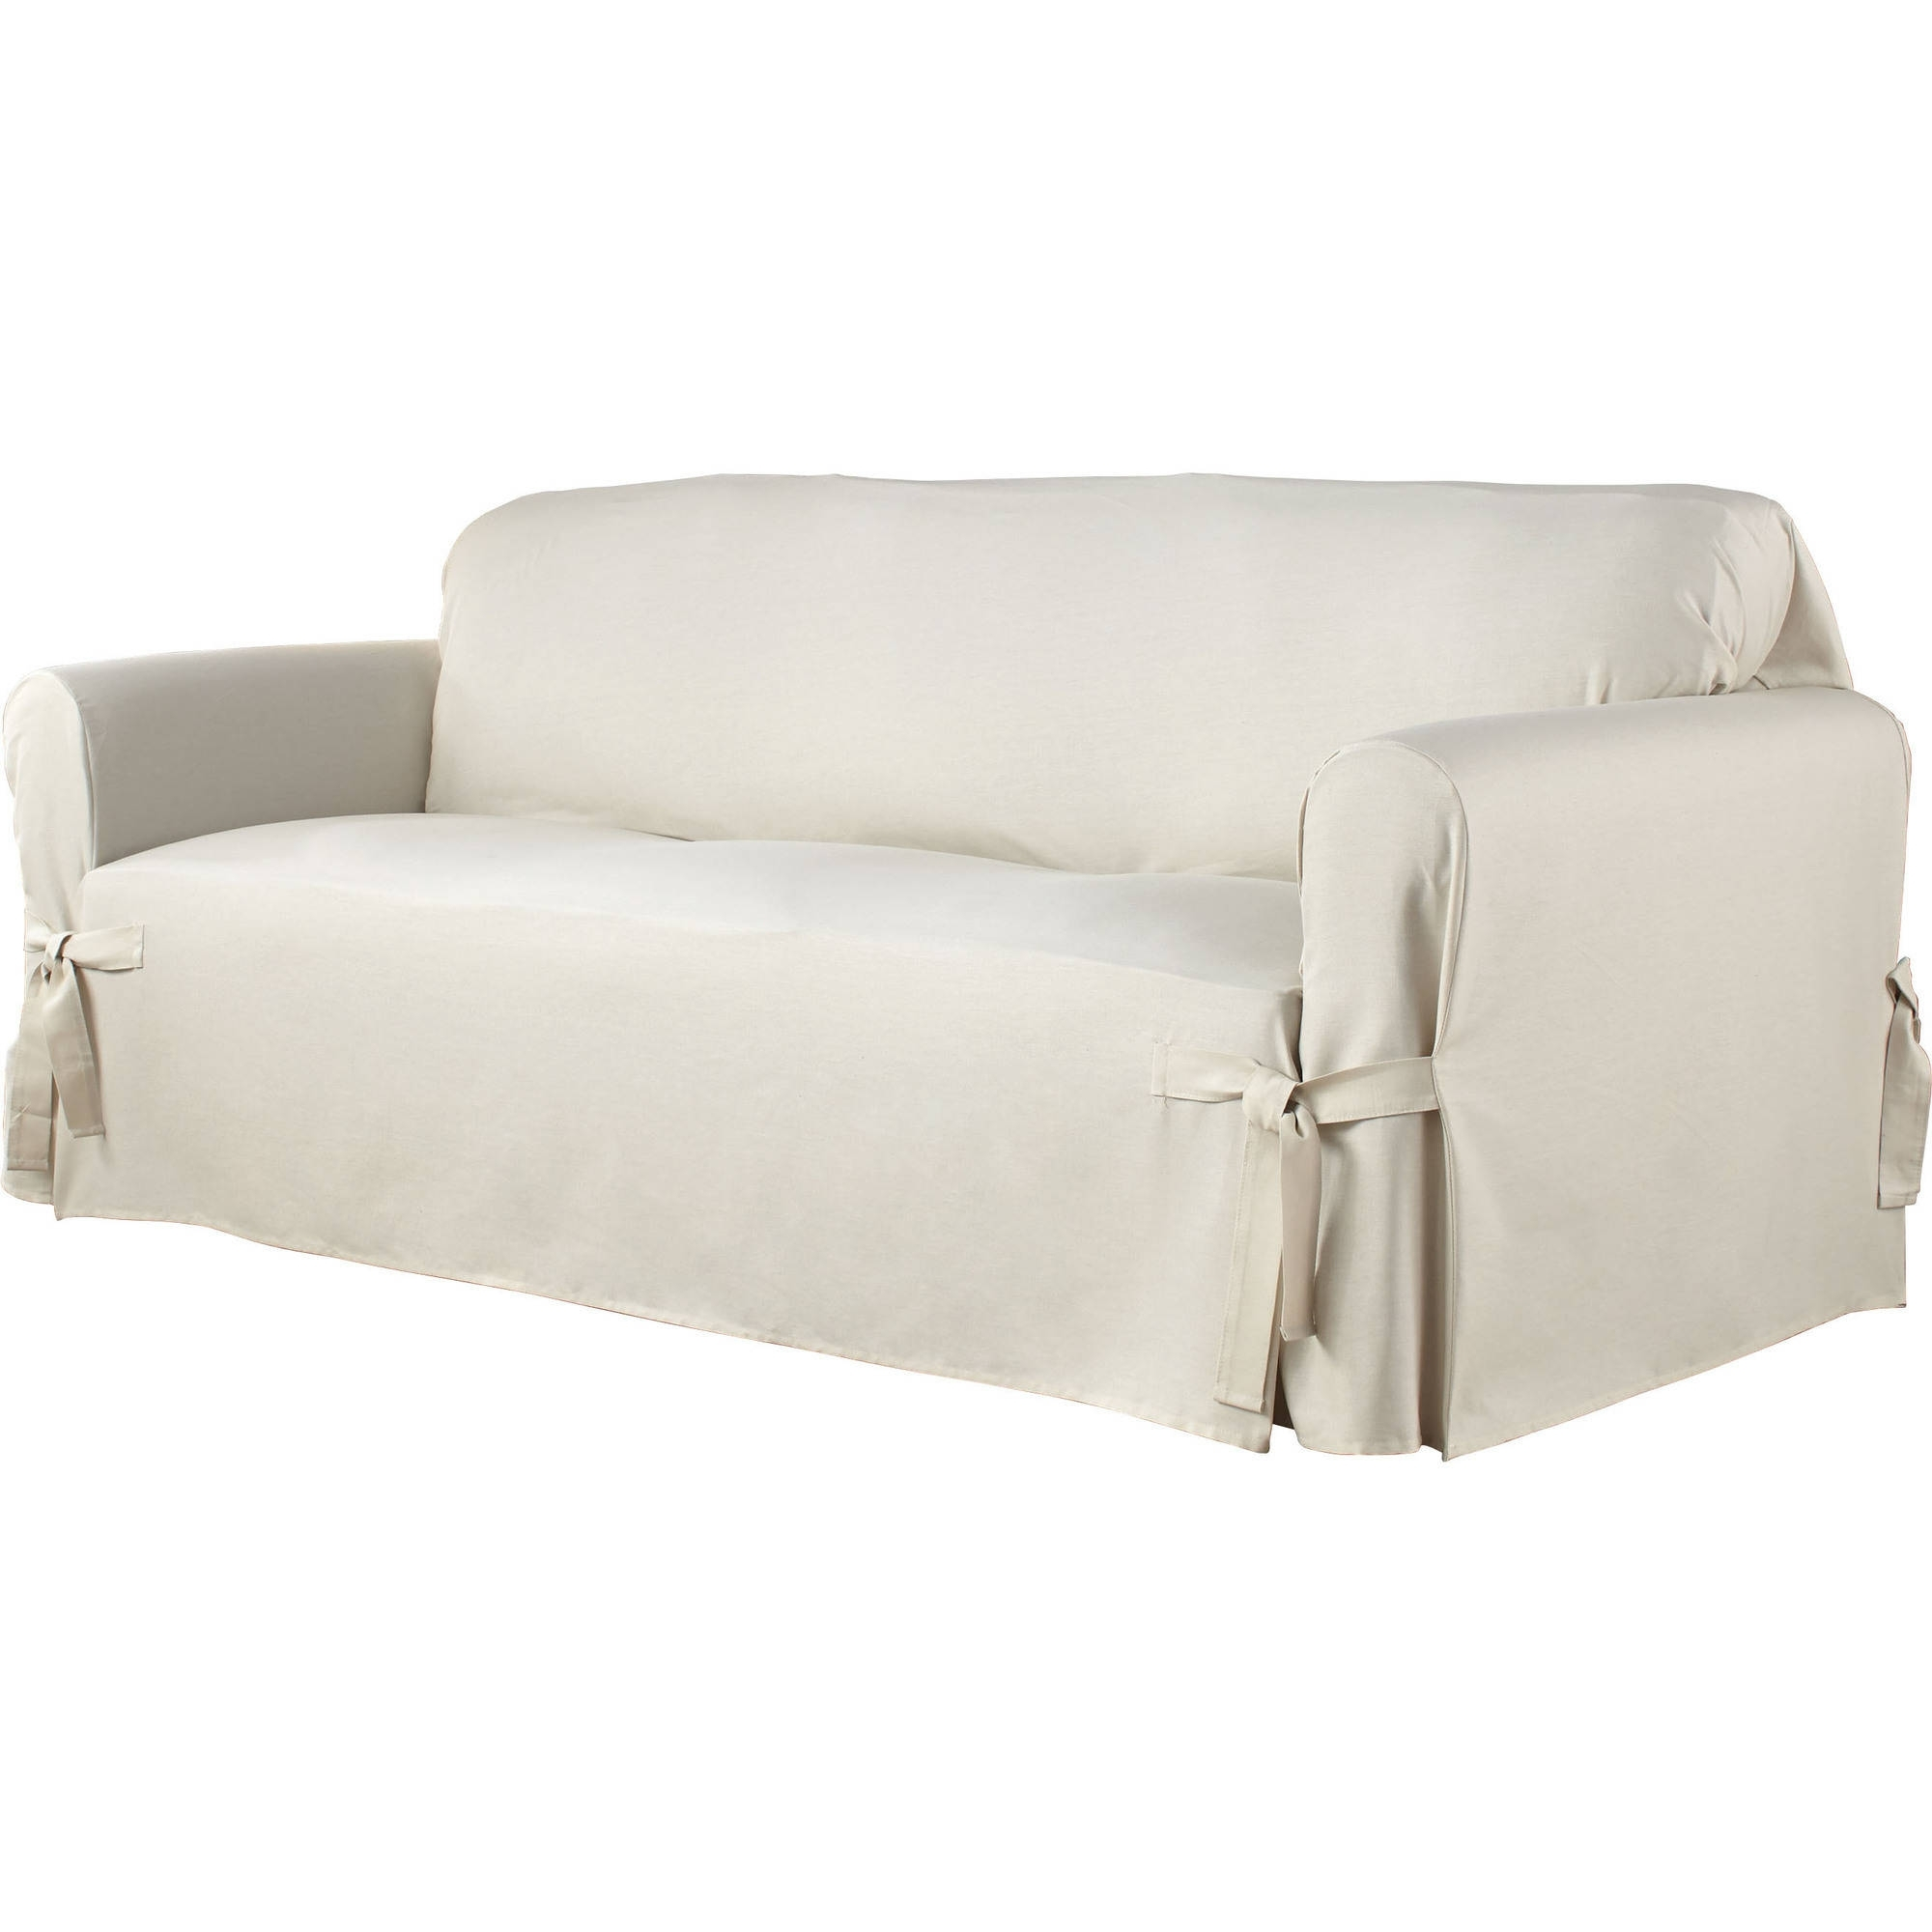 Famous Layaway Sectional Sofas With Furniture: Synergy Furniture (View 6 of 20)